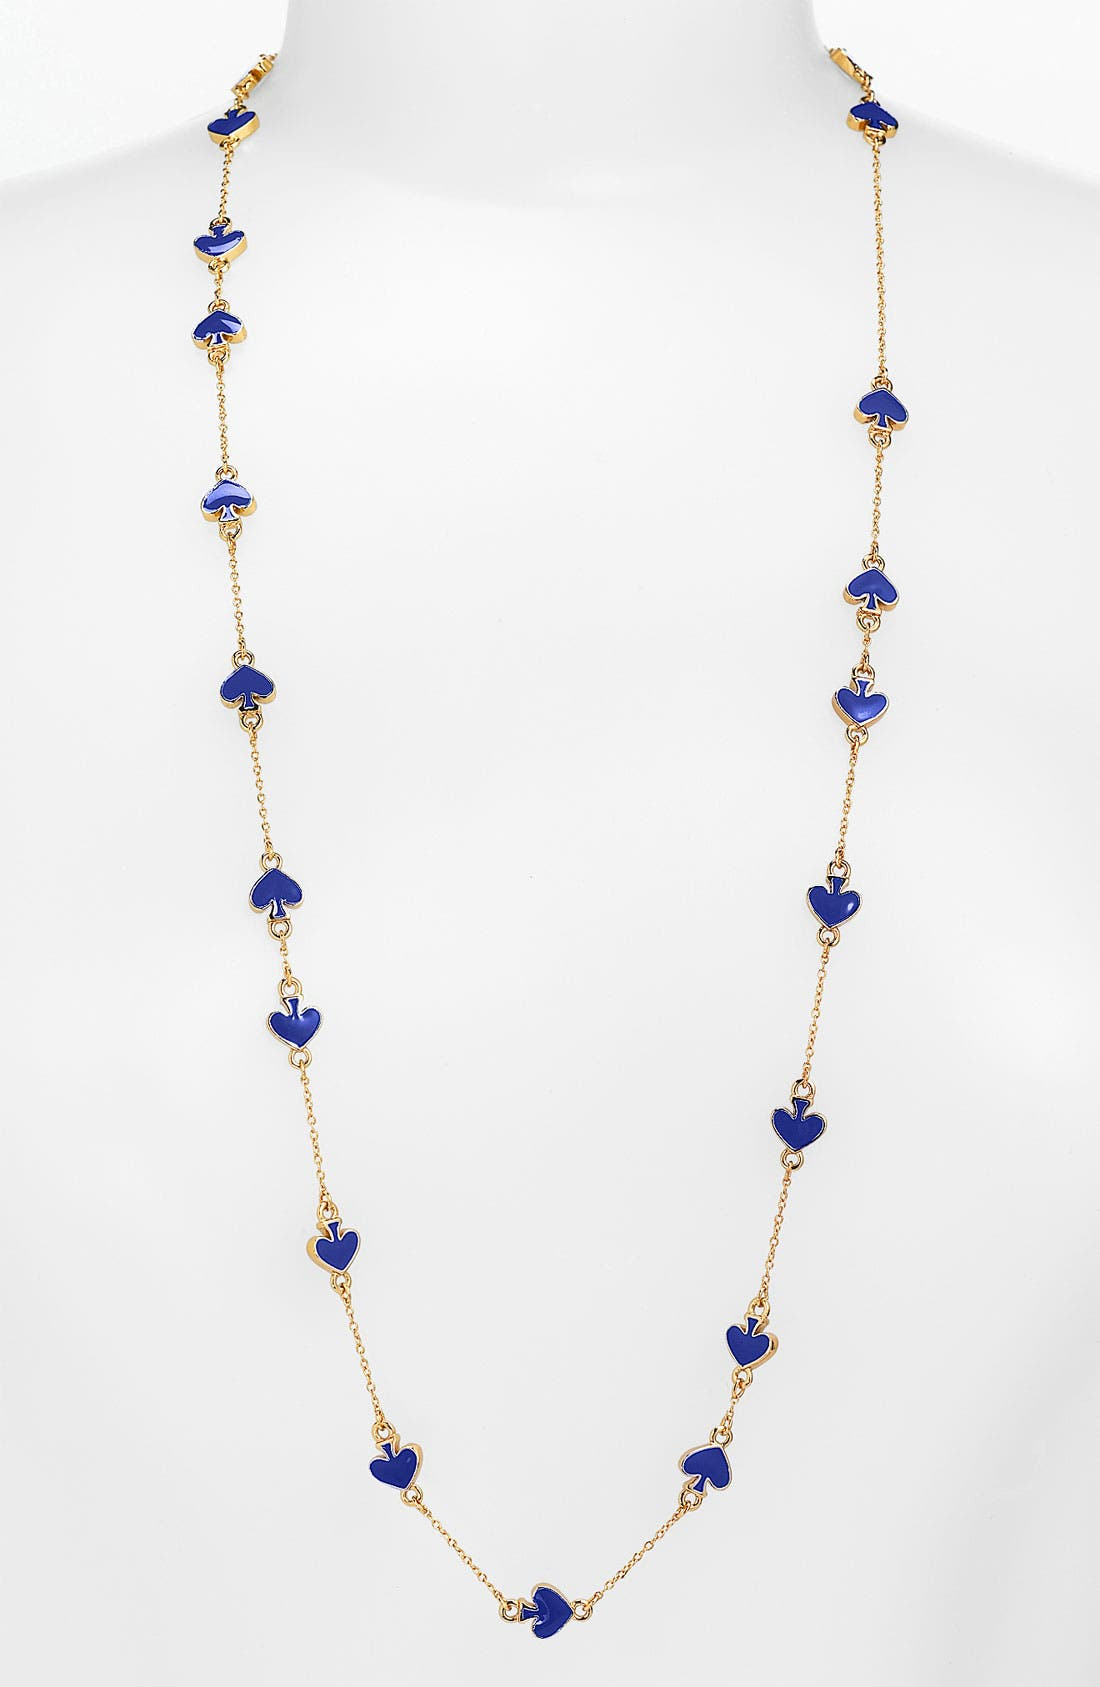 Main Image - kate spade new york 'spade to spade' station necklace